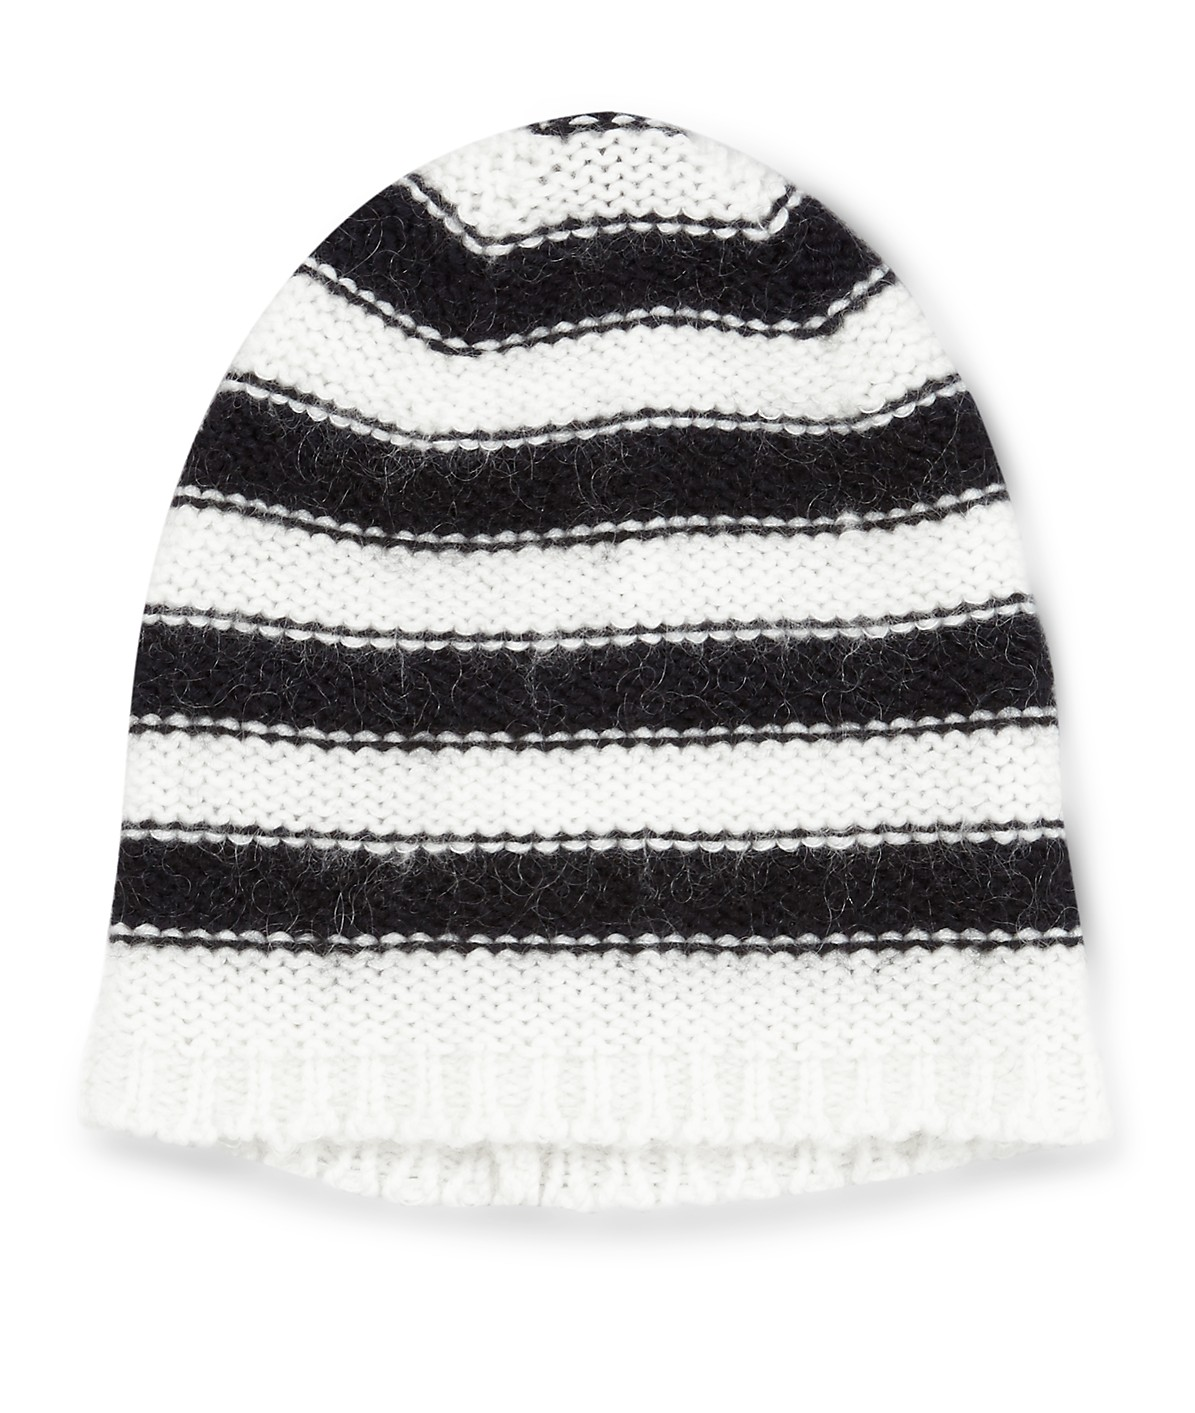 Knit hat W2165112 from liebeskind